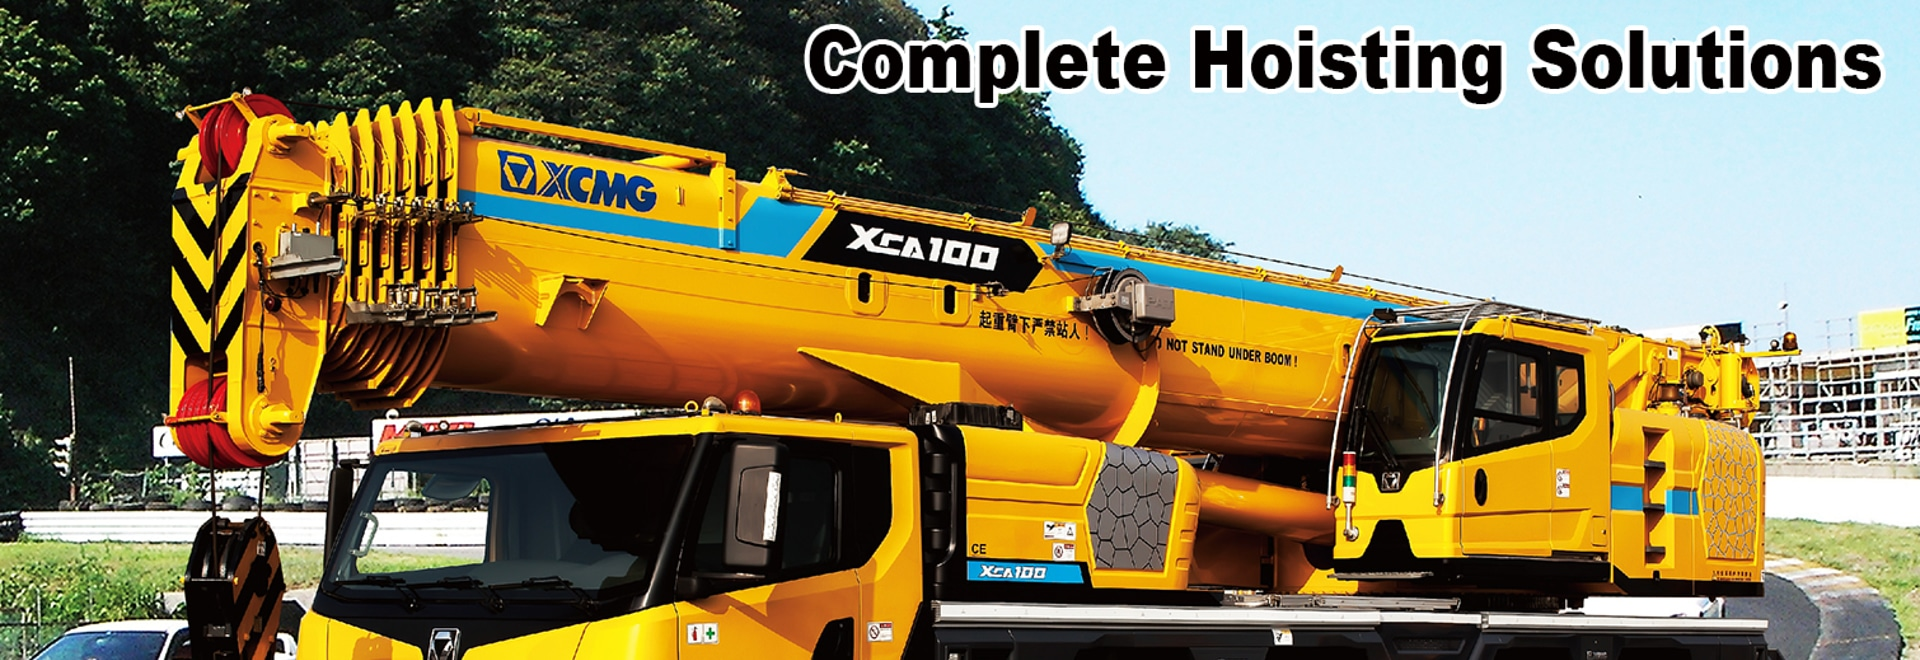 XCMG Complete Hoisting Solutions